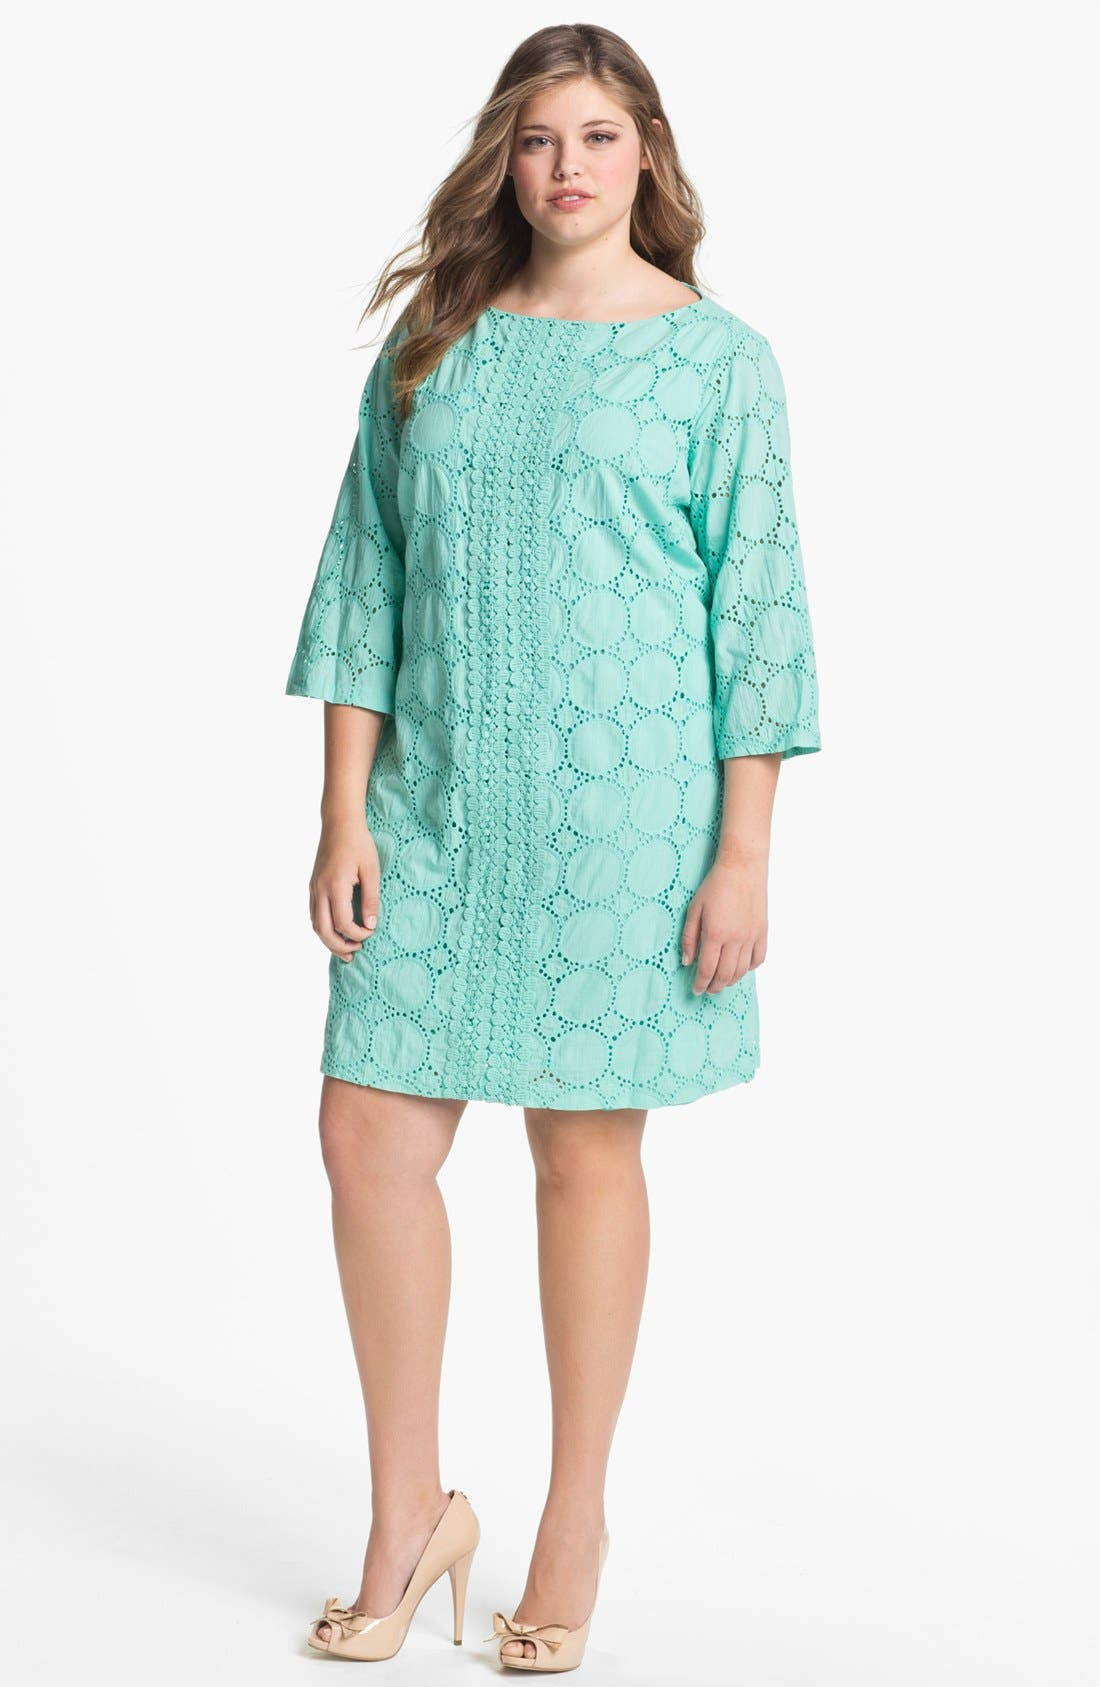 Alternate Image 1 Selected - London Times Eyelet Shift Dress (Plus Size)